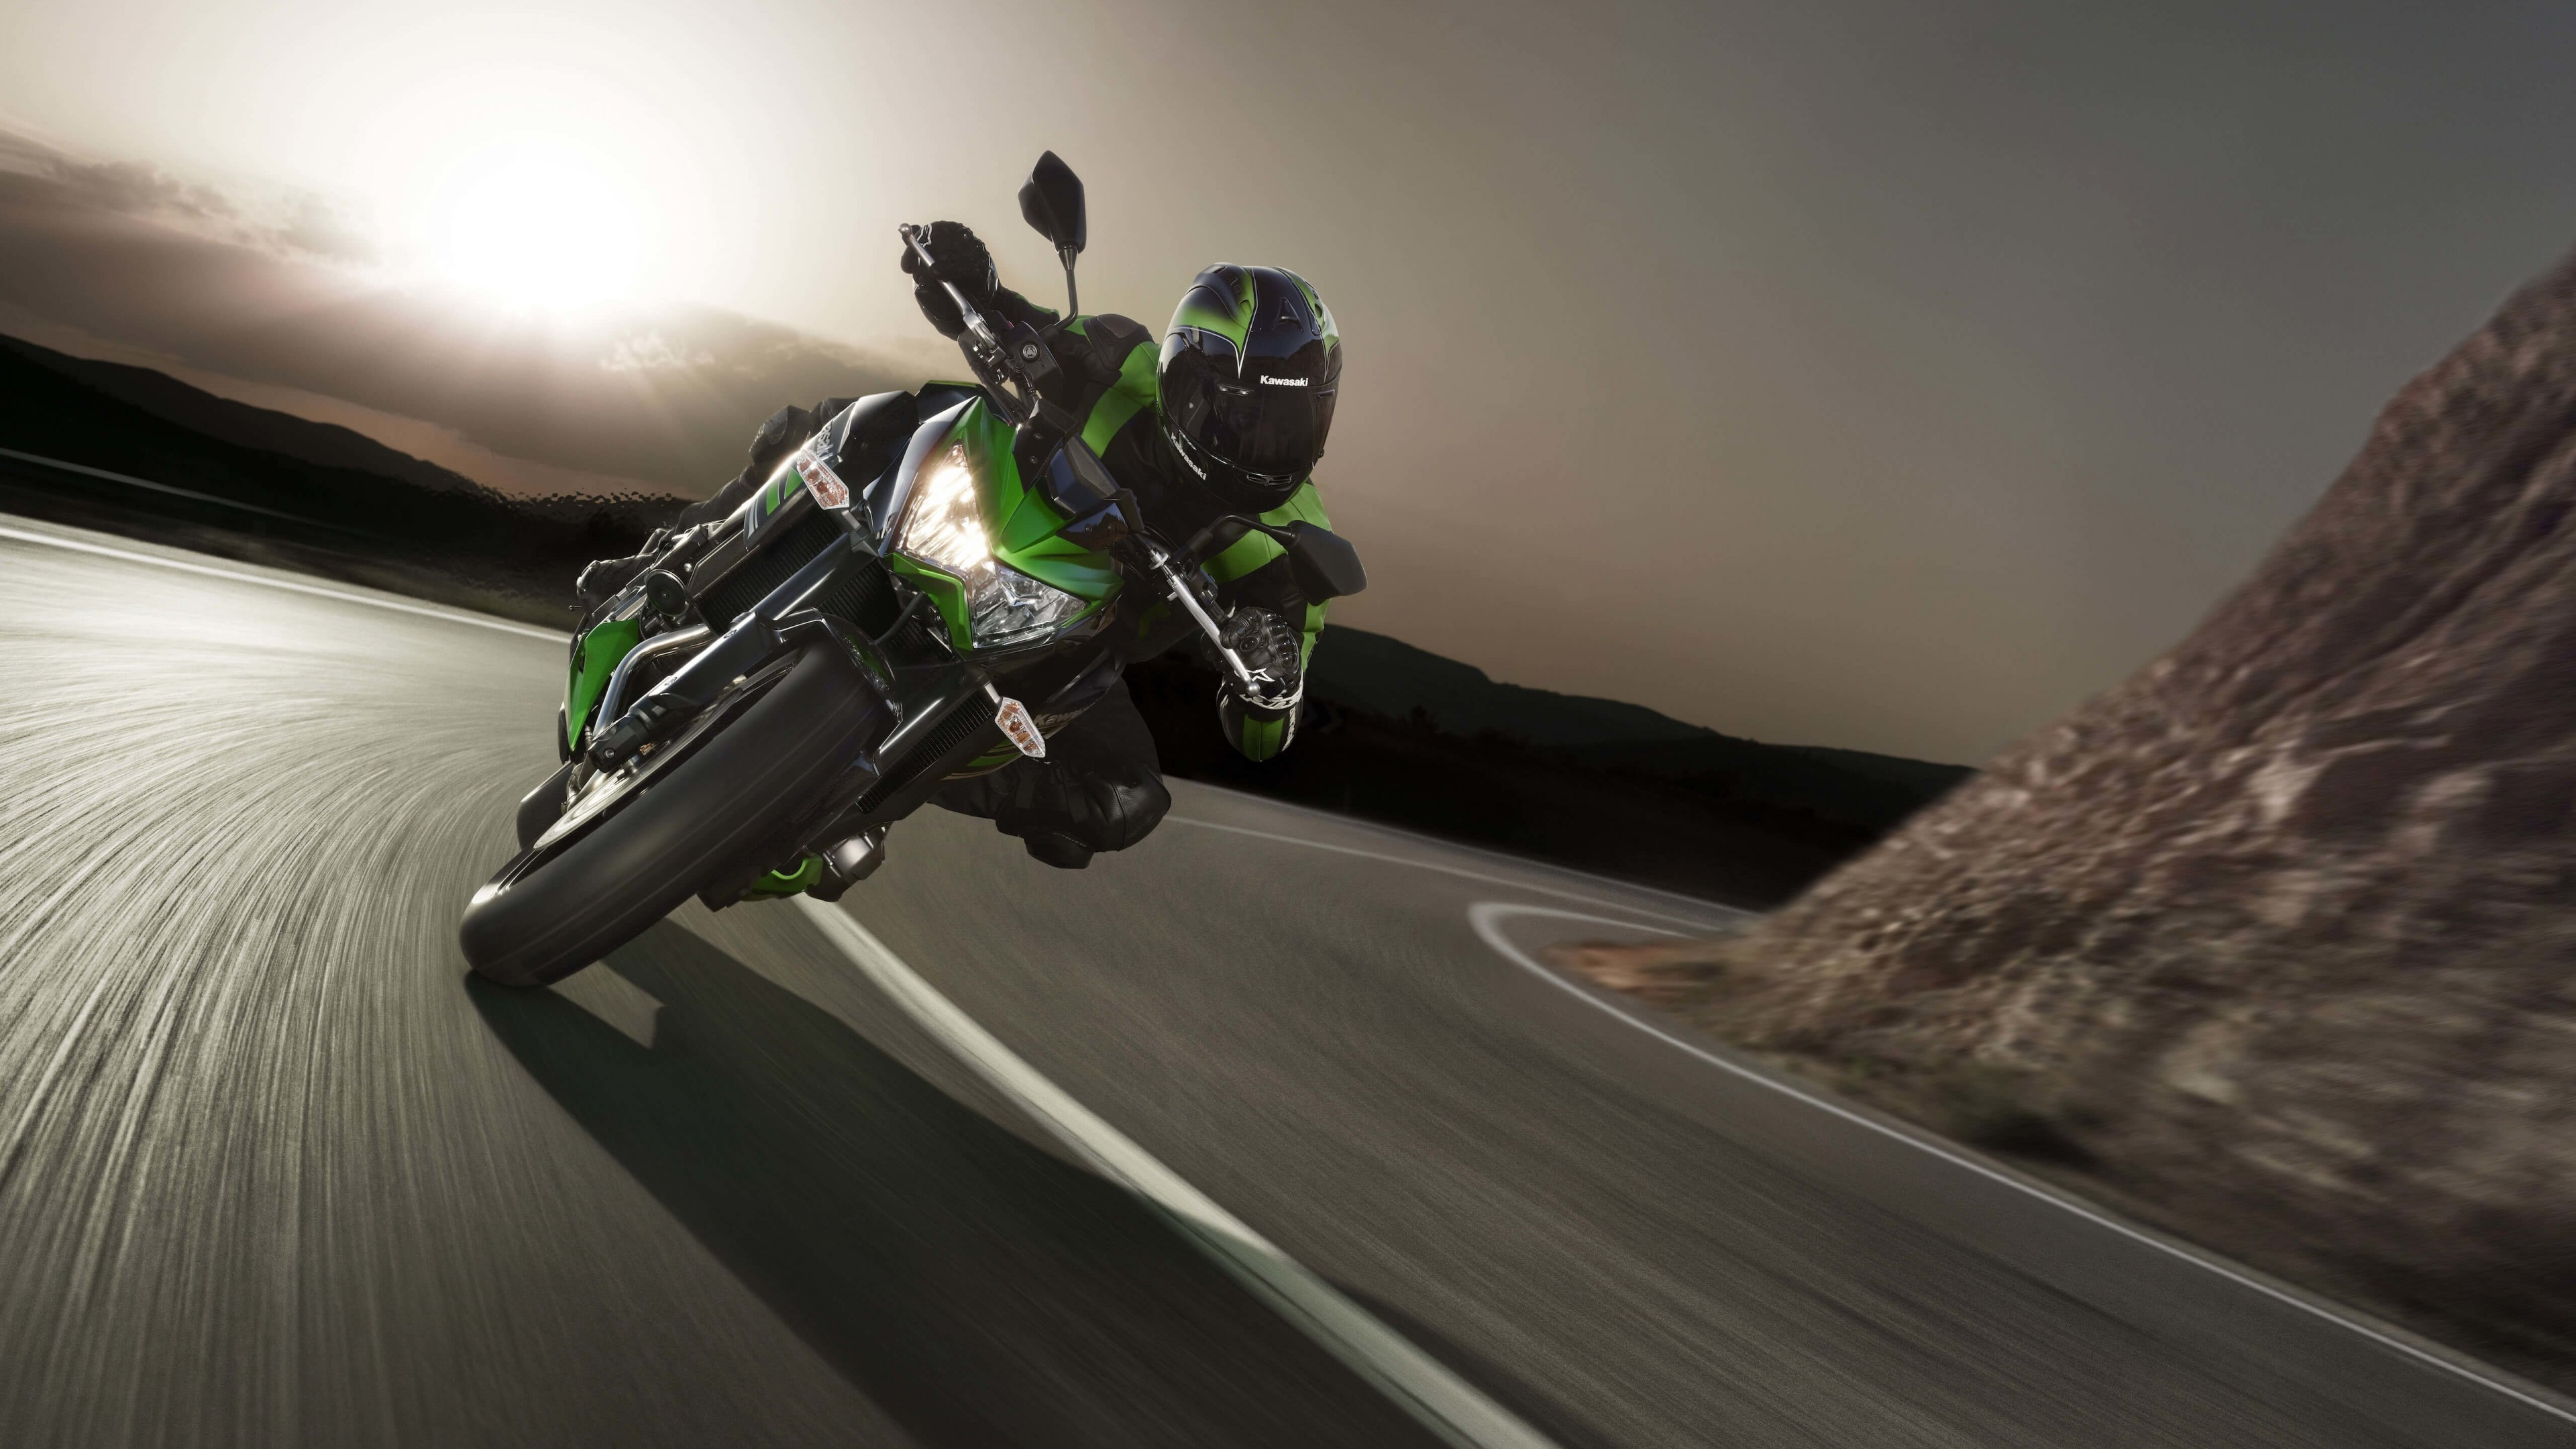 Kawasaki Ninja ZX-10R Wallpaper for Desktop 4K 3840x2160